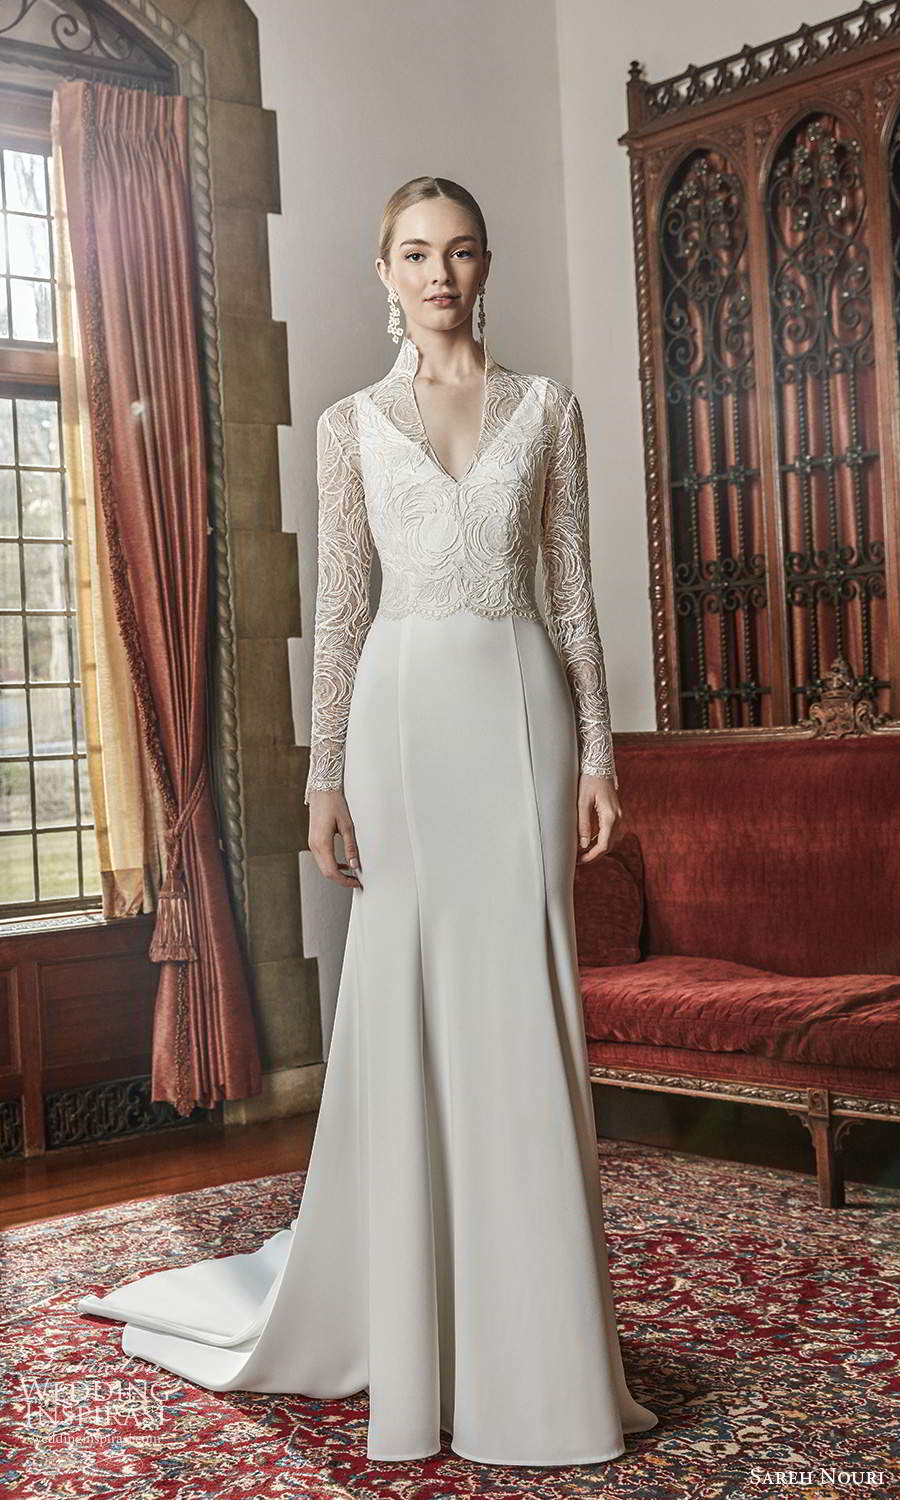 sareh nouri spring 2022 bridal sleeveless straps v neckline clean minimalist fit flare mermaid wedding dress chapel train long sleeve lace jacket (4) mv